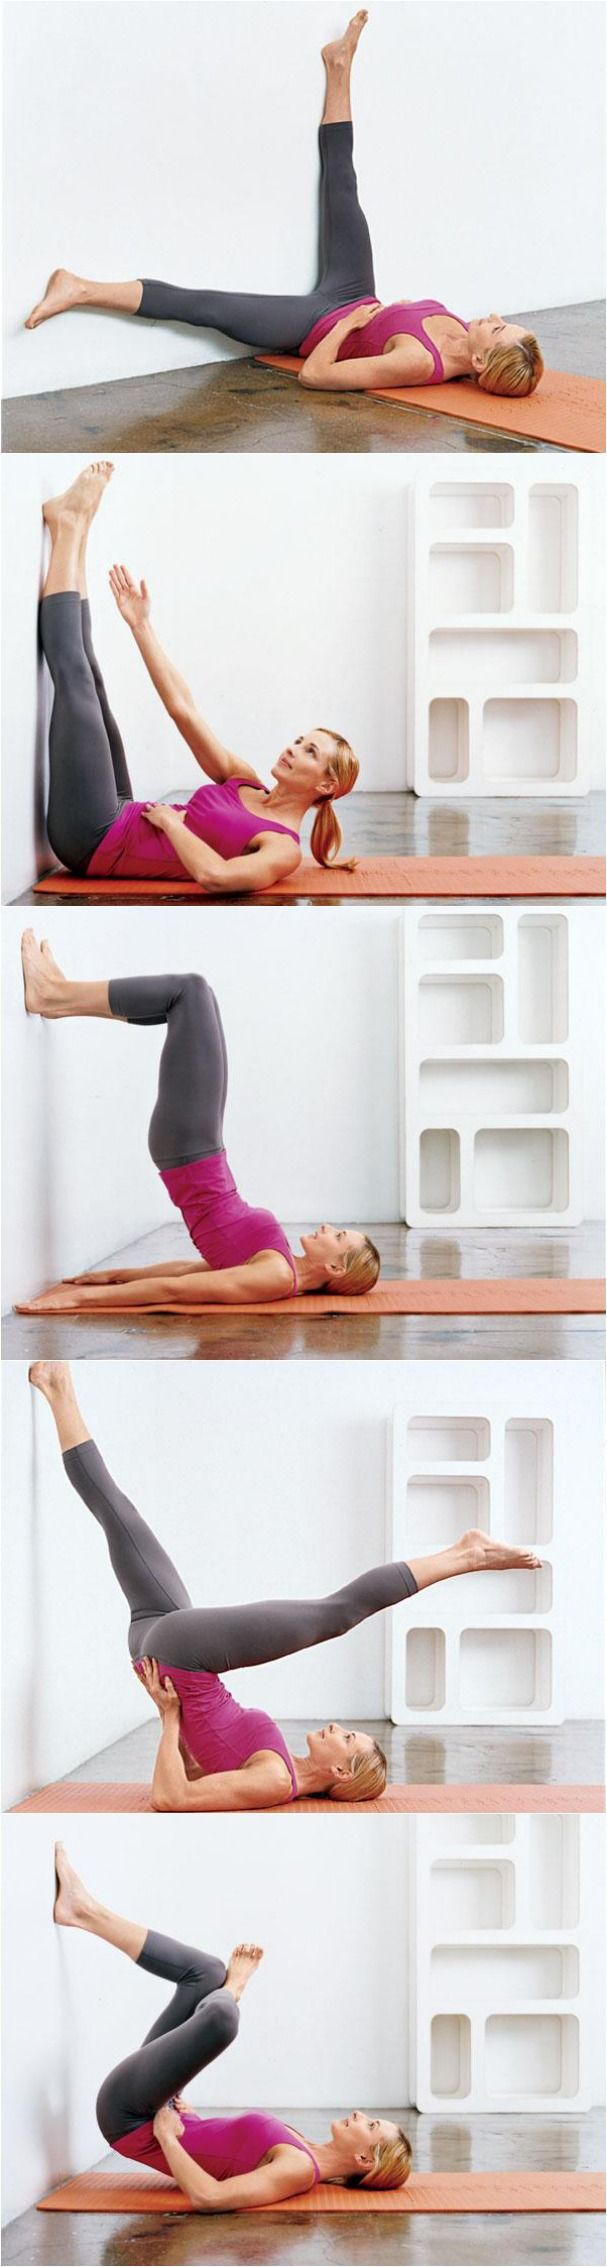 These moves will flatten your belly, slim your thighs, and firm your butt in 2 weeks!